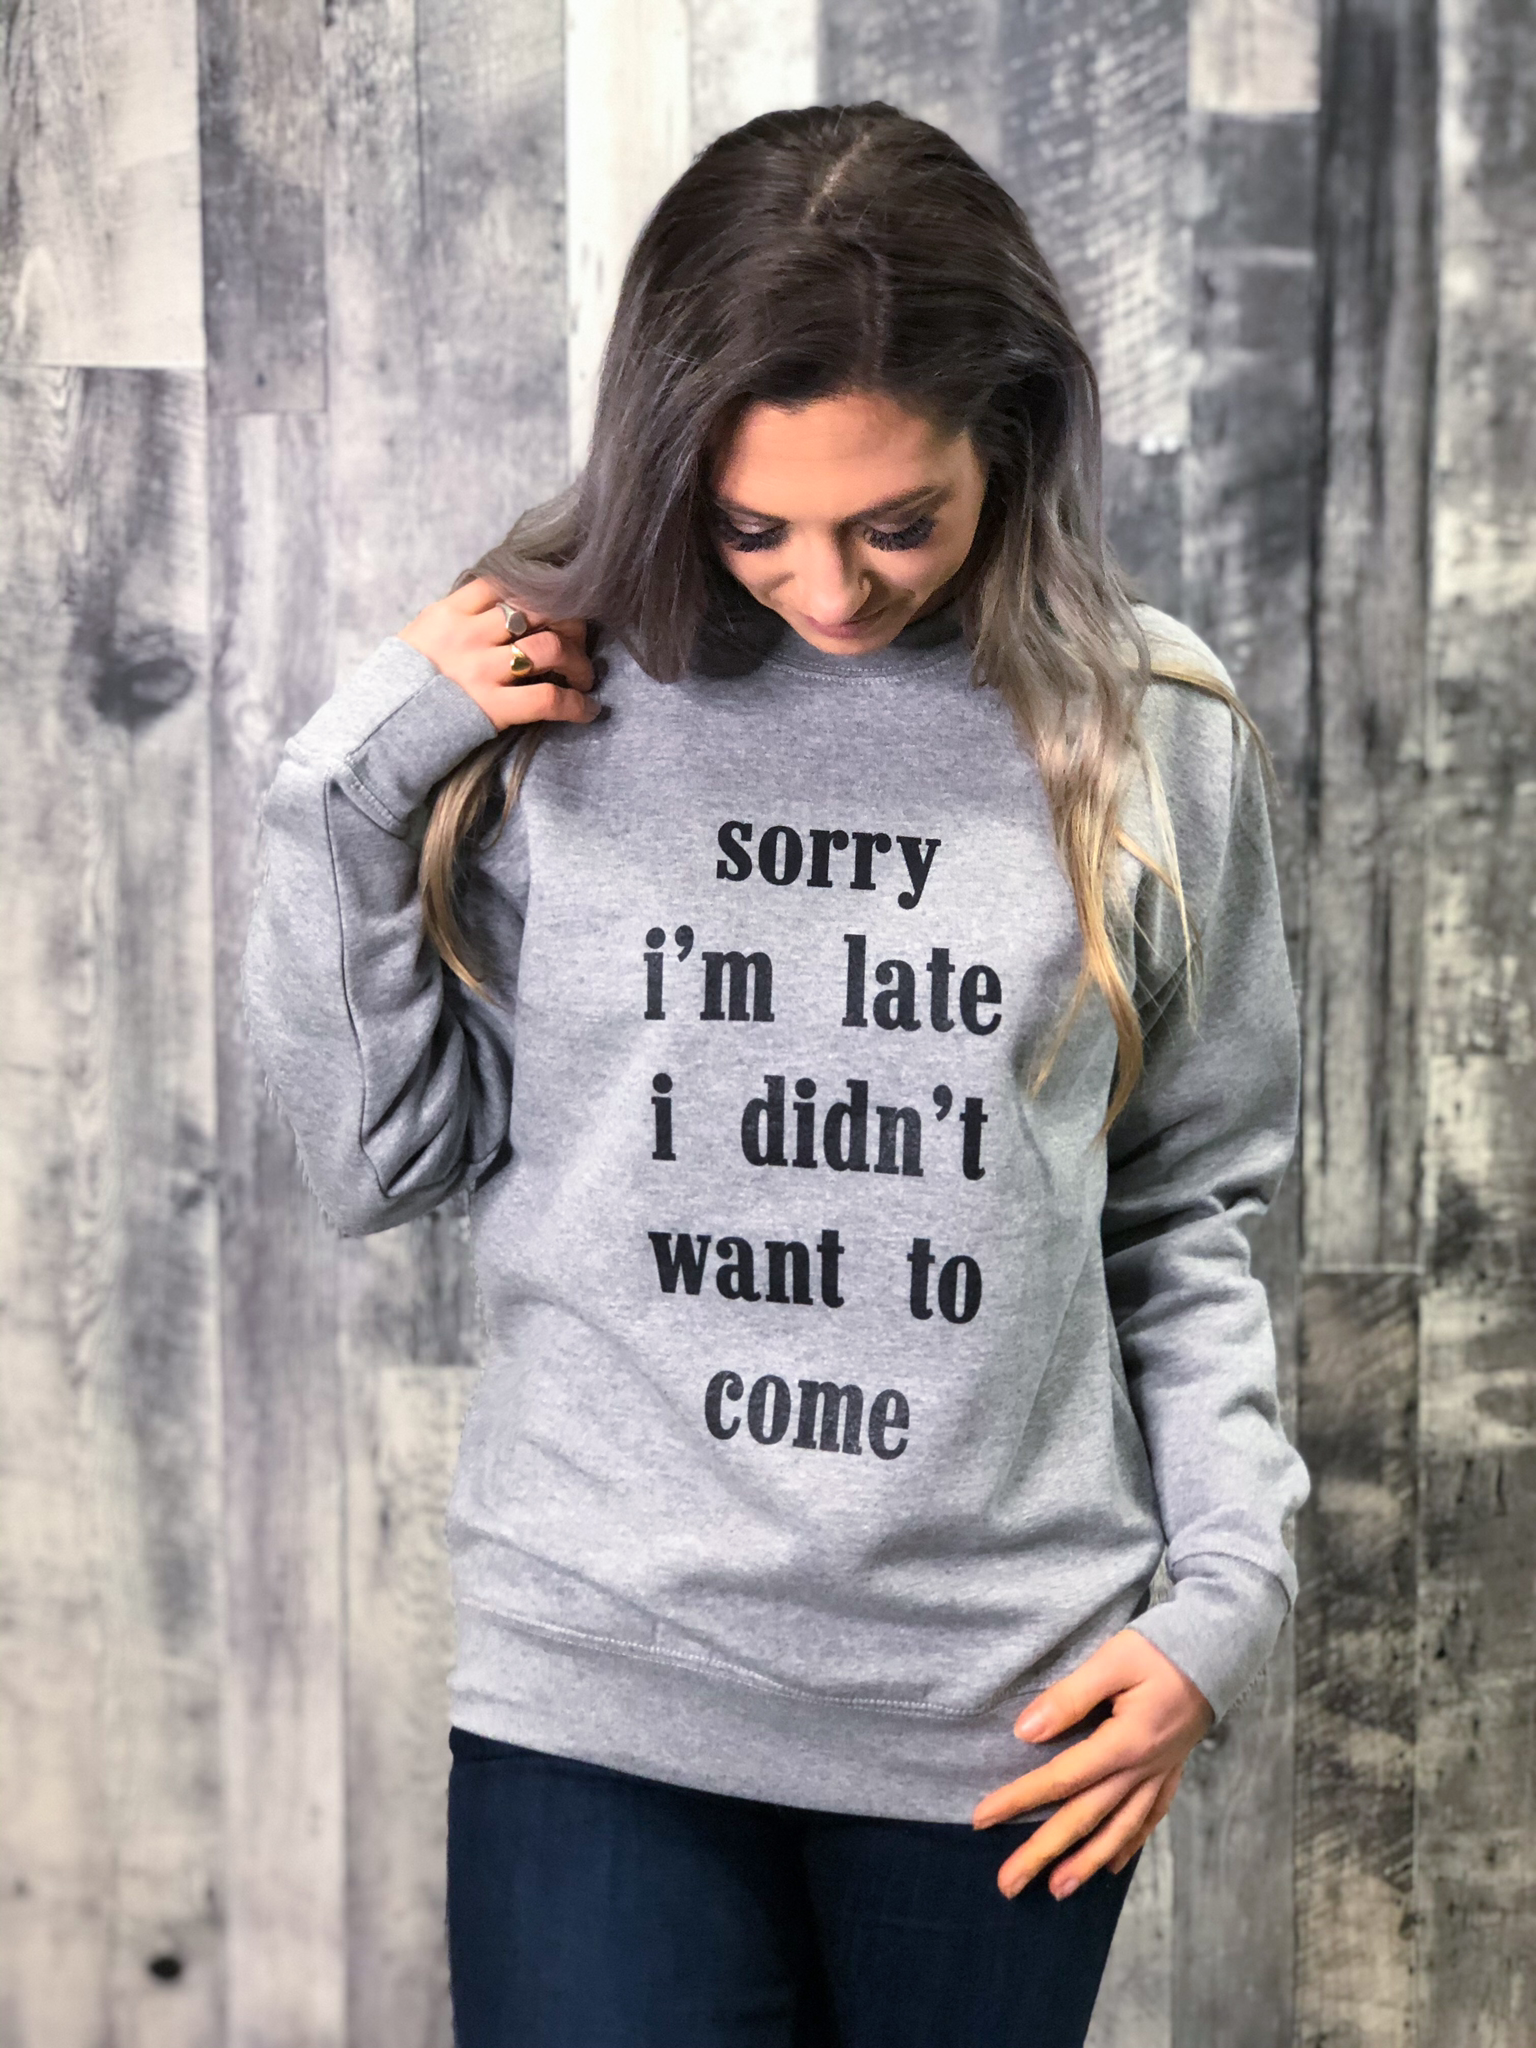 Didn't Want to Come Sweatshirt 84644